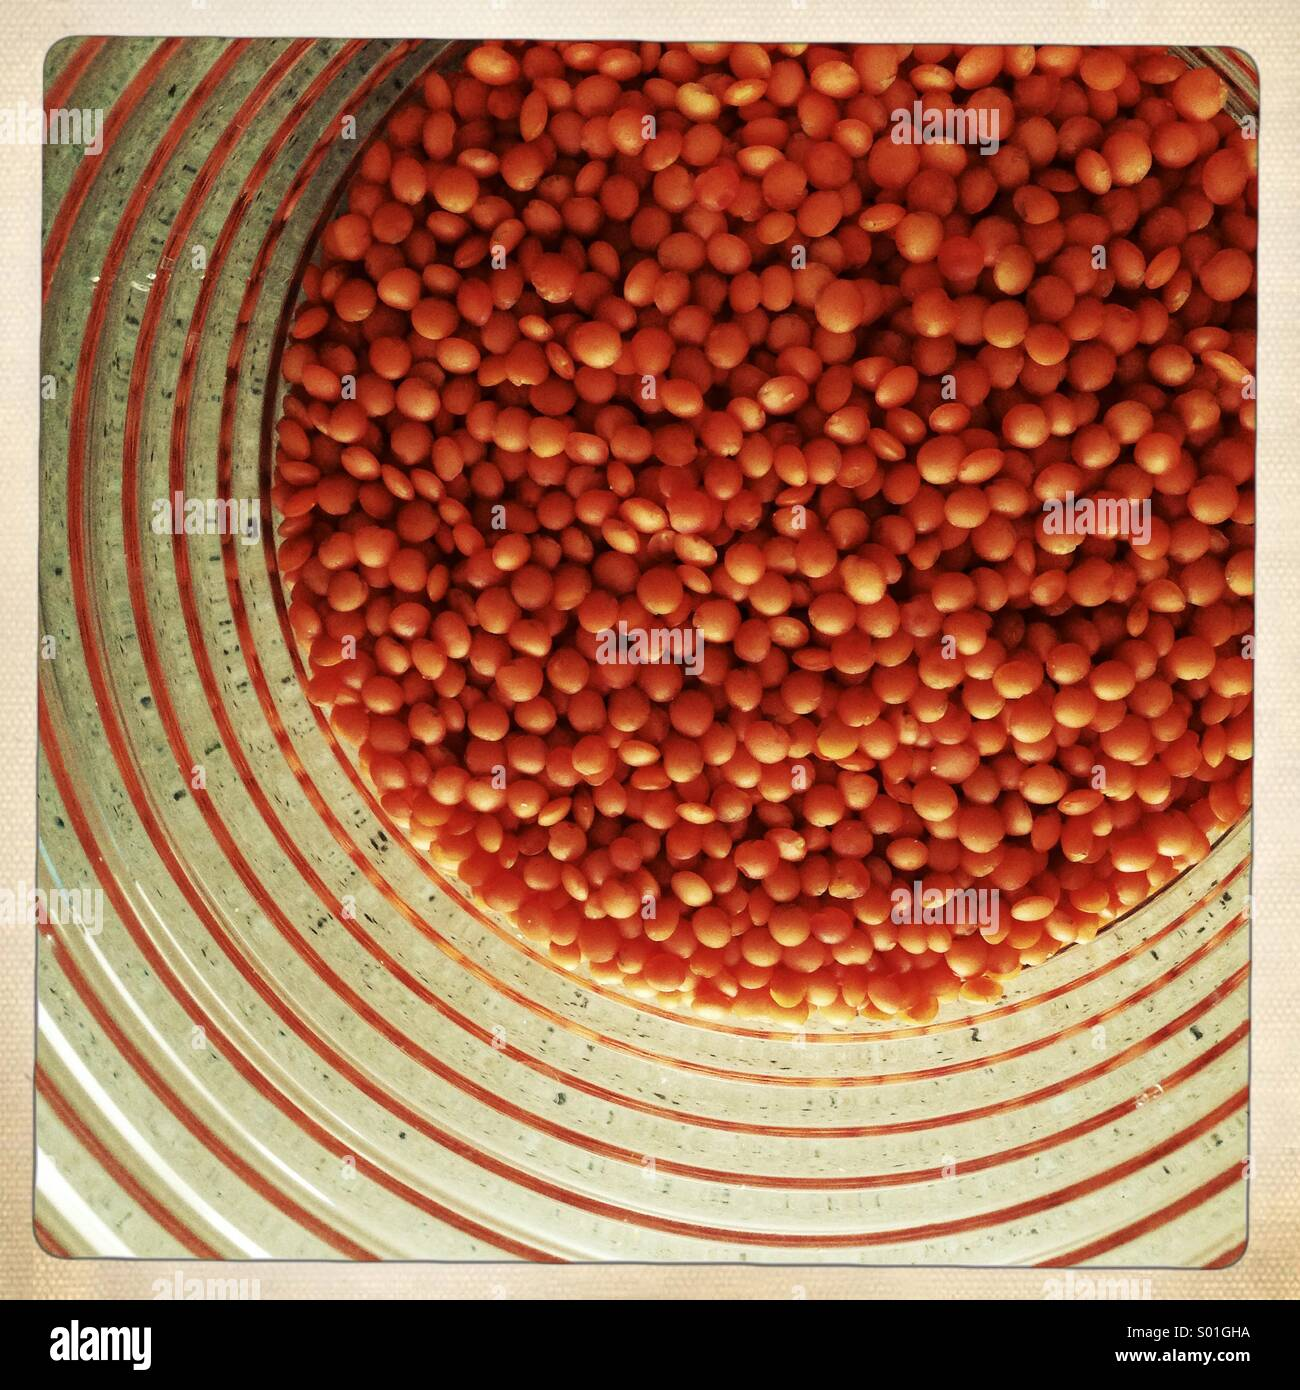 Red lentils in a jar - Stock Image